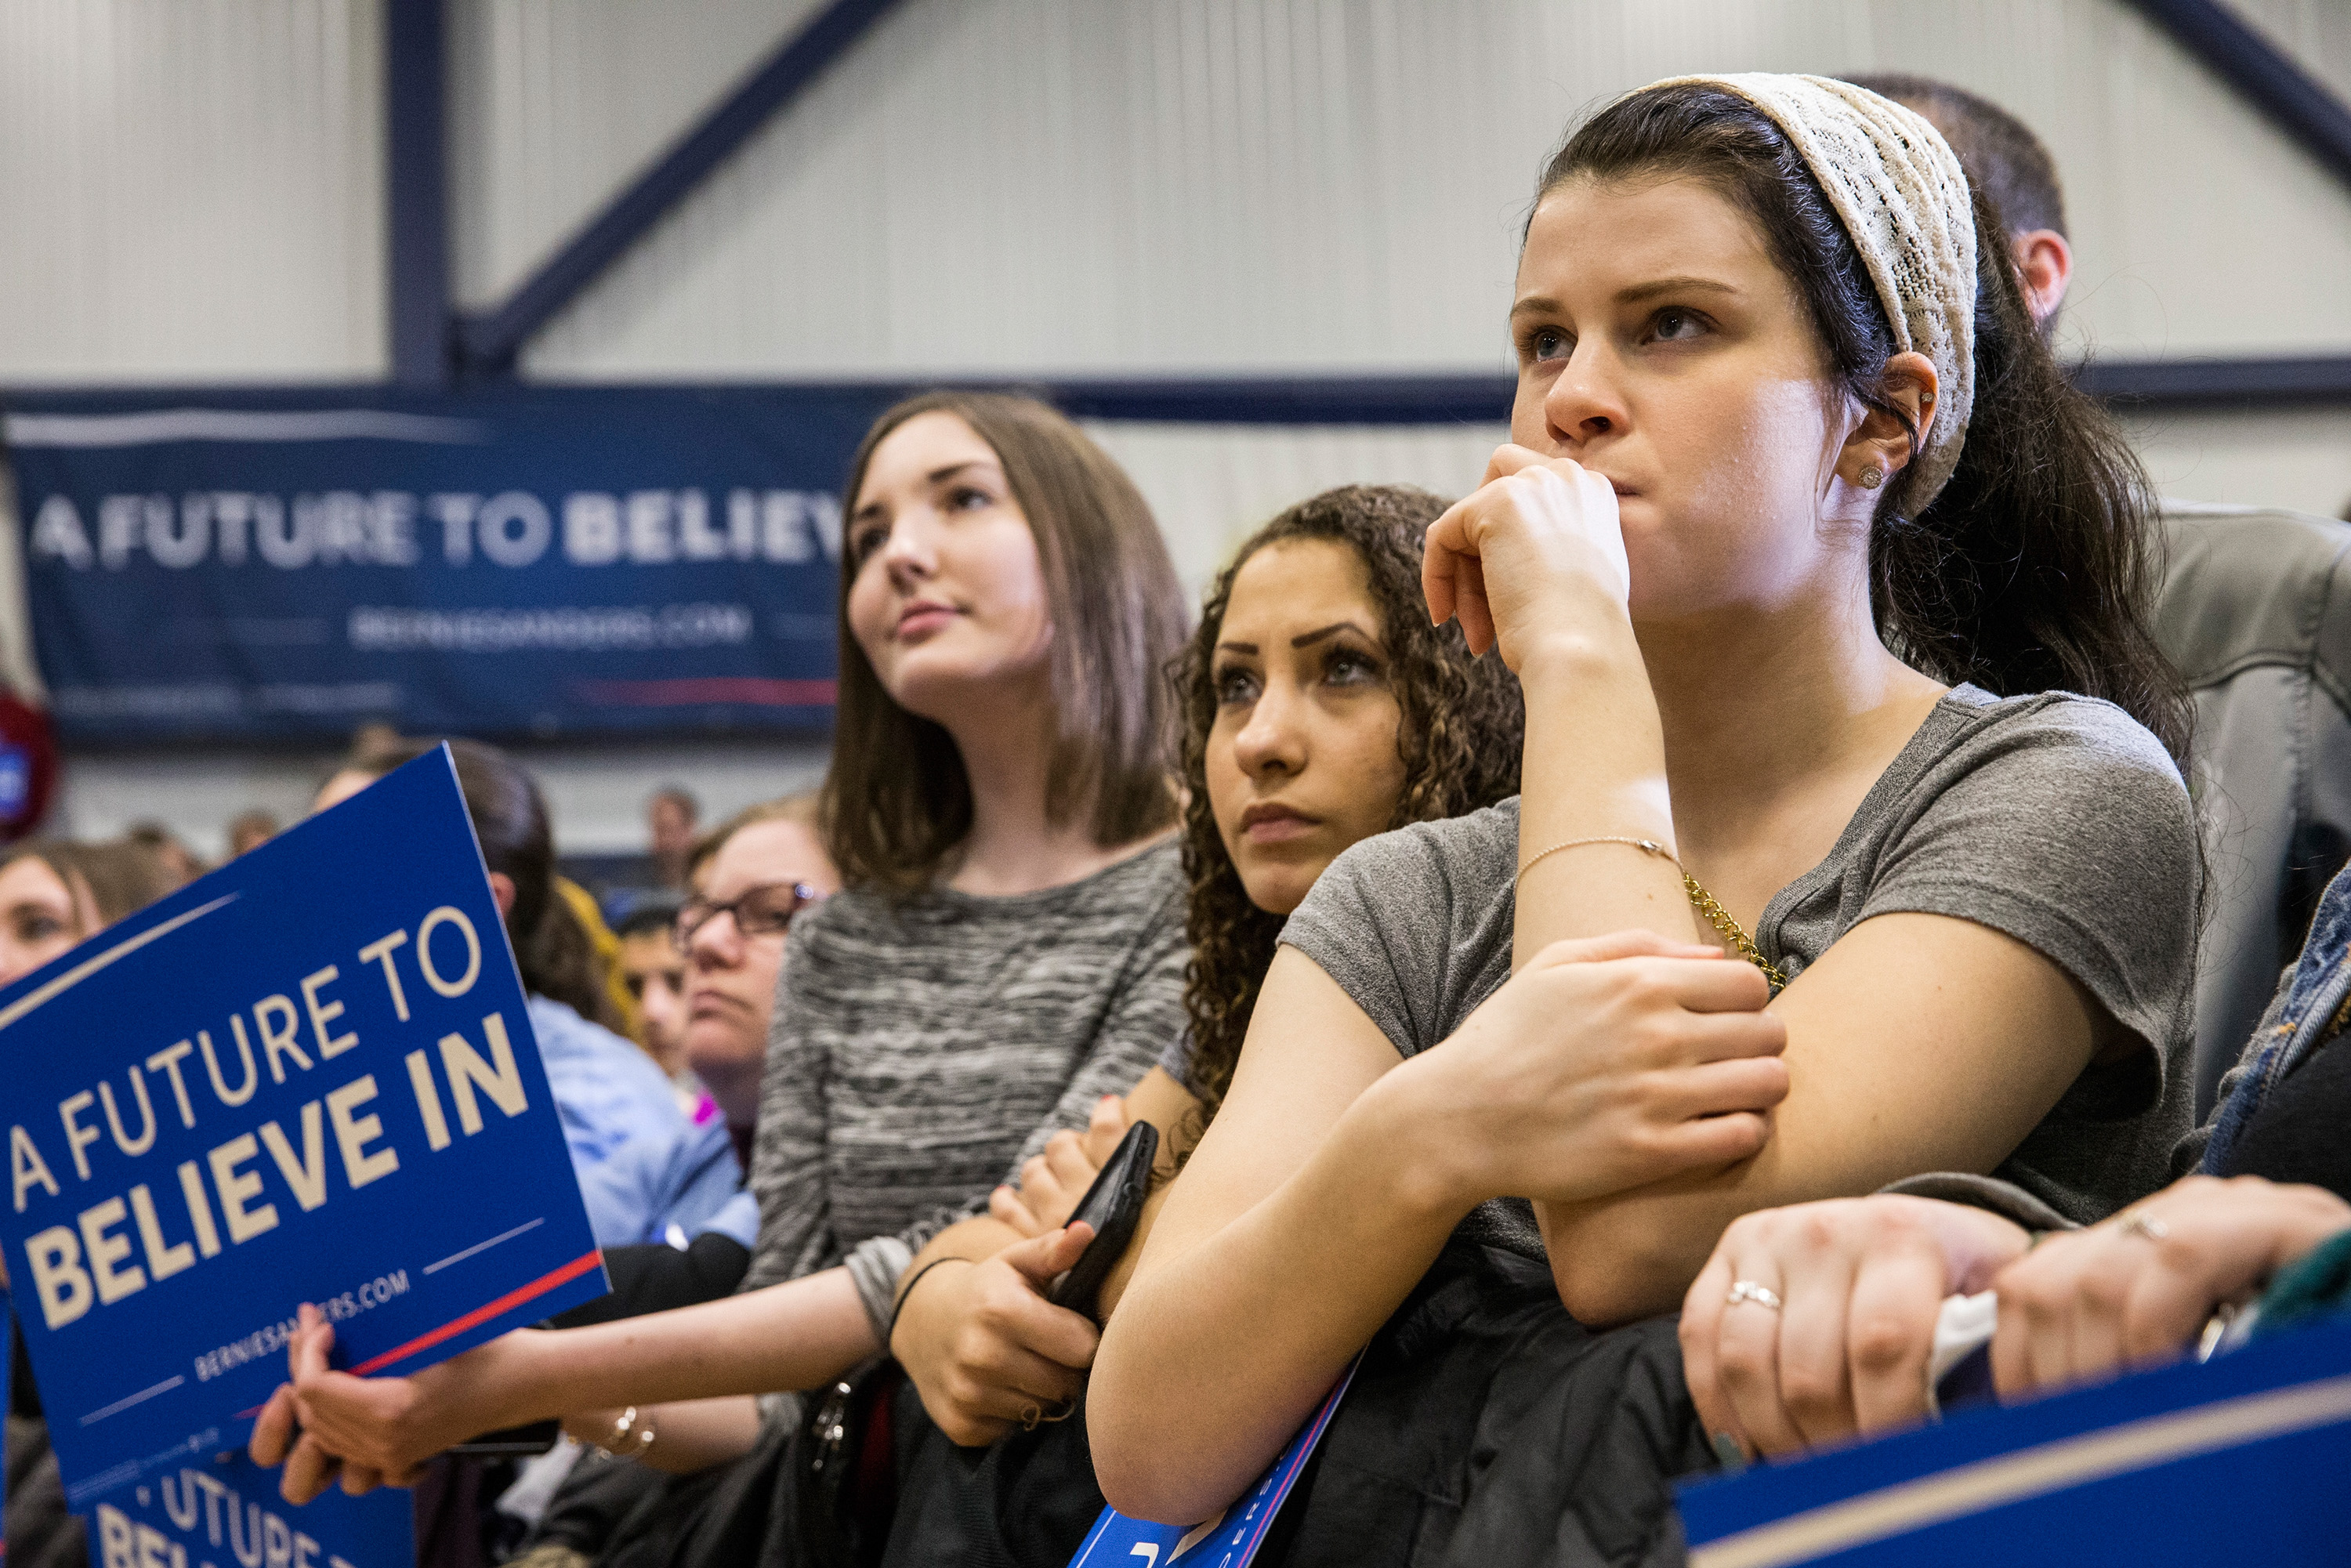 Why Are Millennial Women Gravitating to Bernie Sanders?